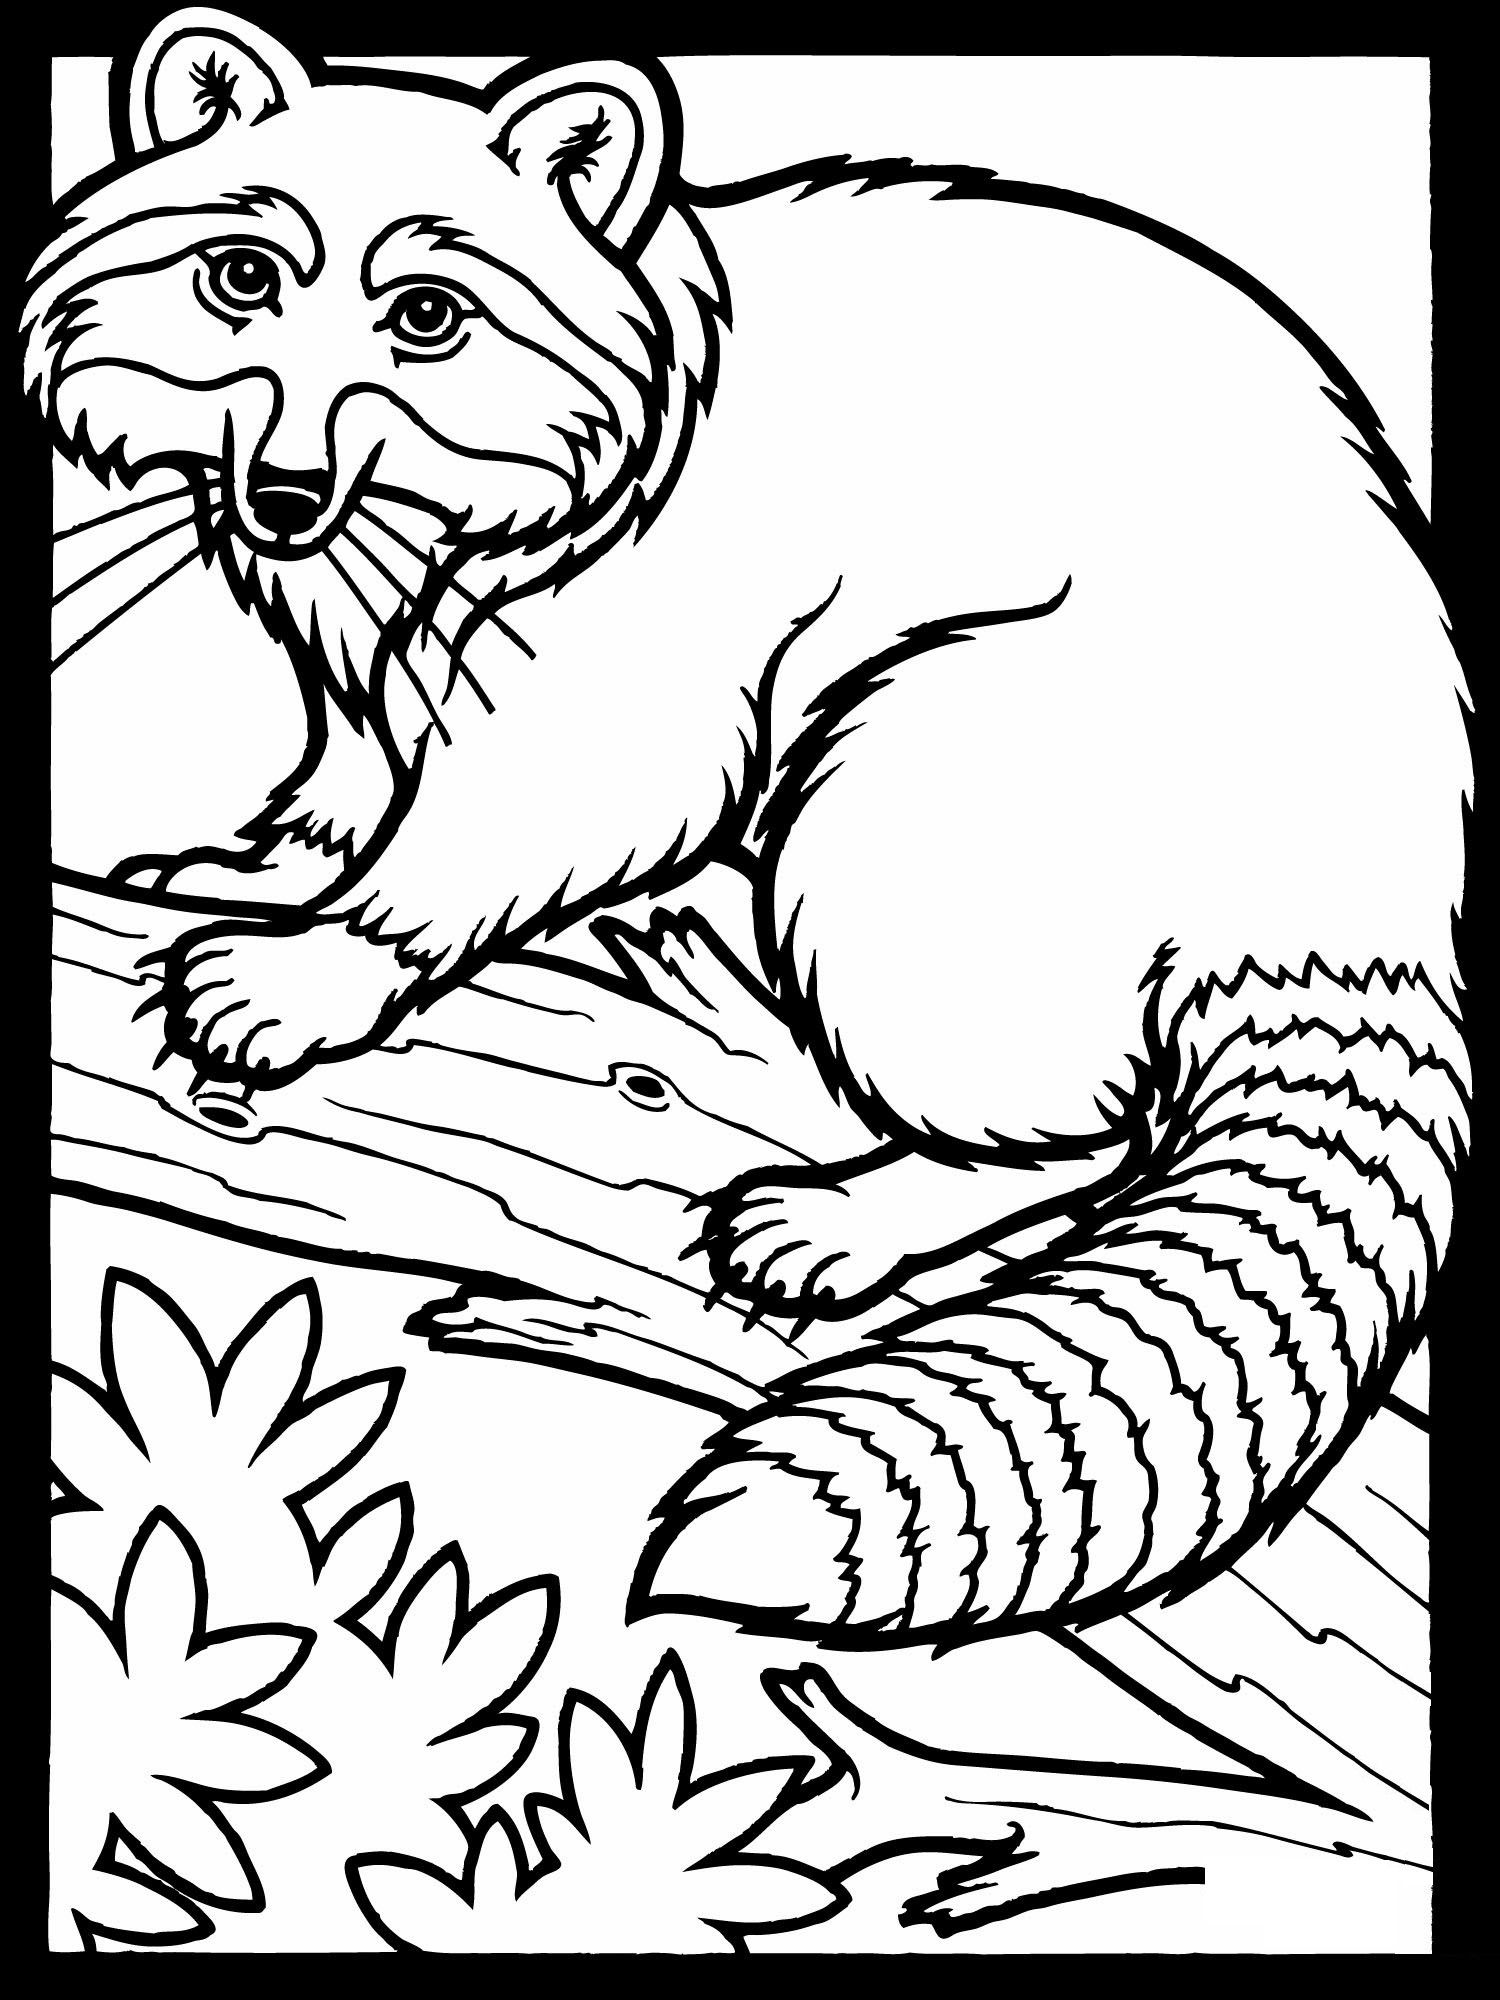 Free Printable Raccoon Coloring Pages For Kids | Raccoons, Free ...